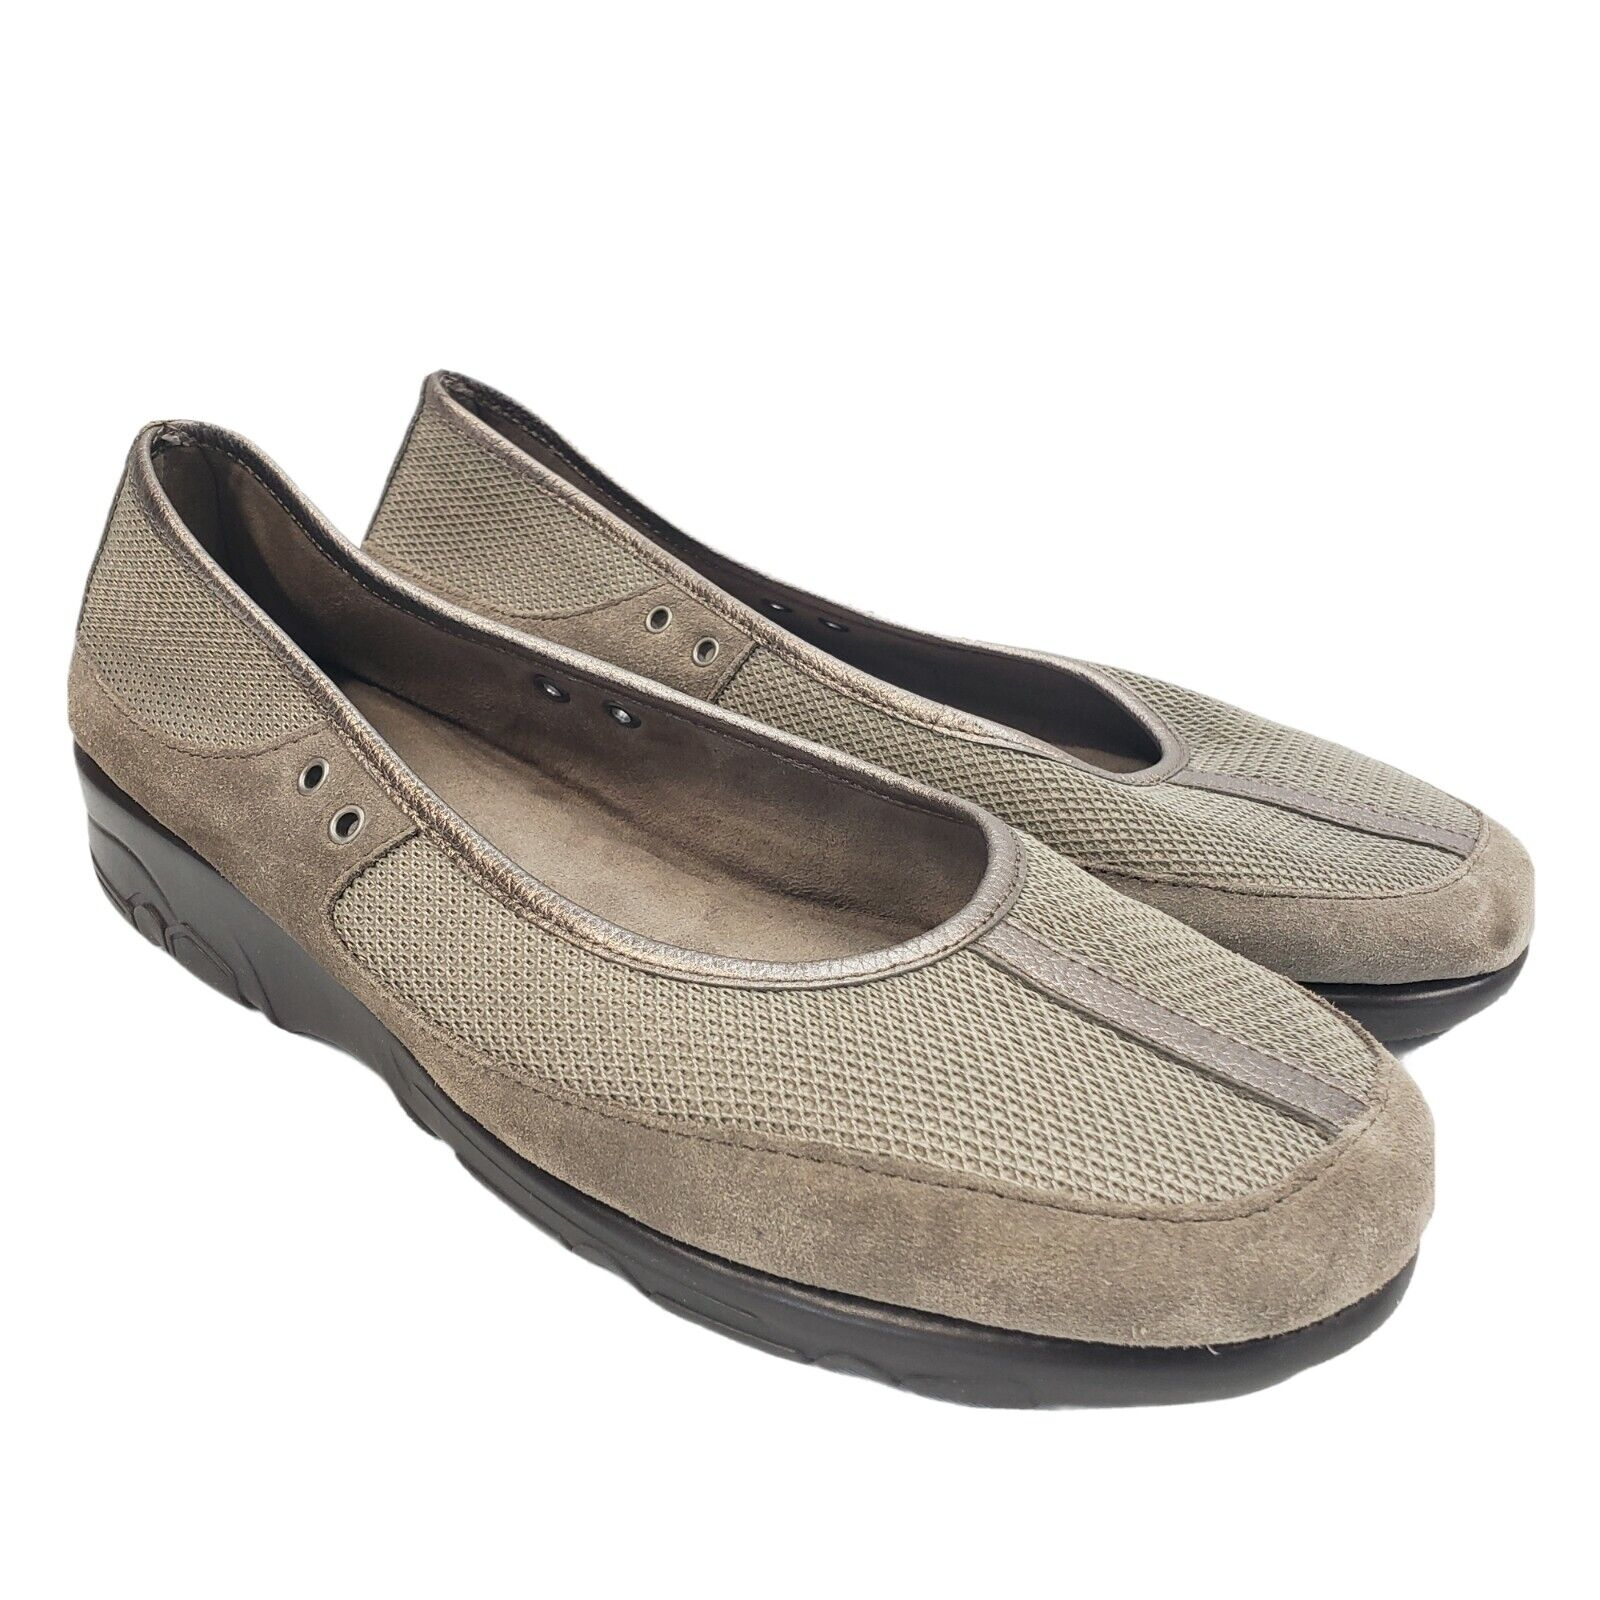 Aerosoles Women's Loafer Flats Shoes Size 9M Gray Frabic Slip On